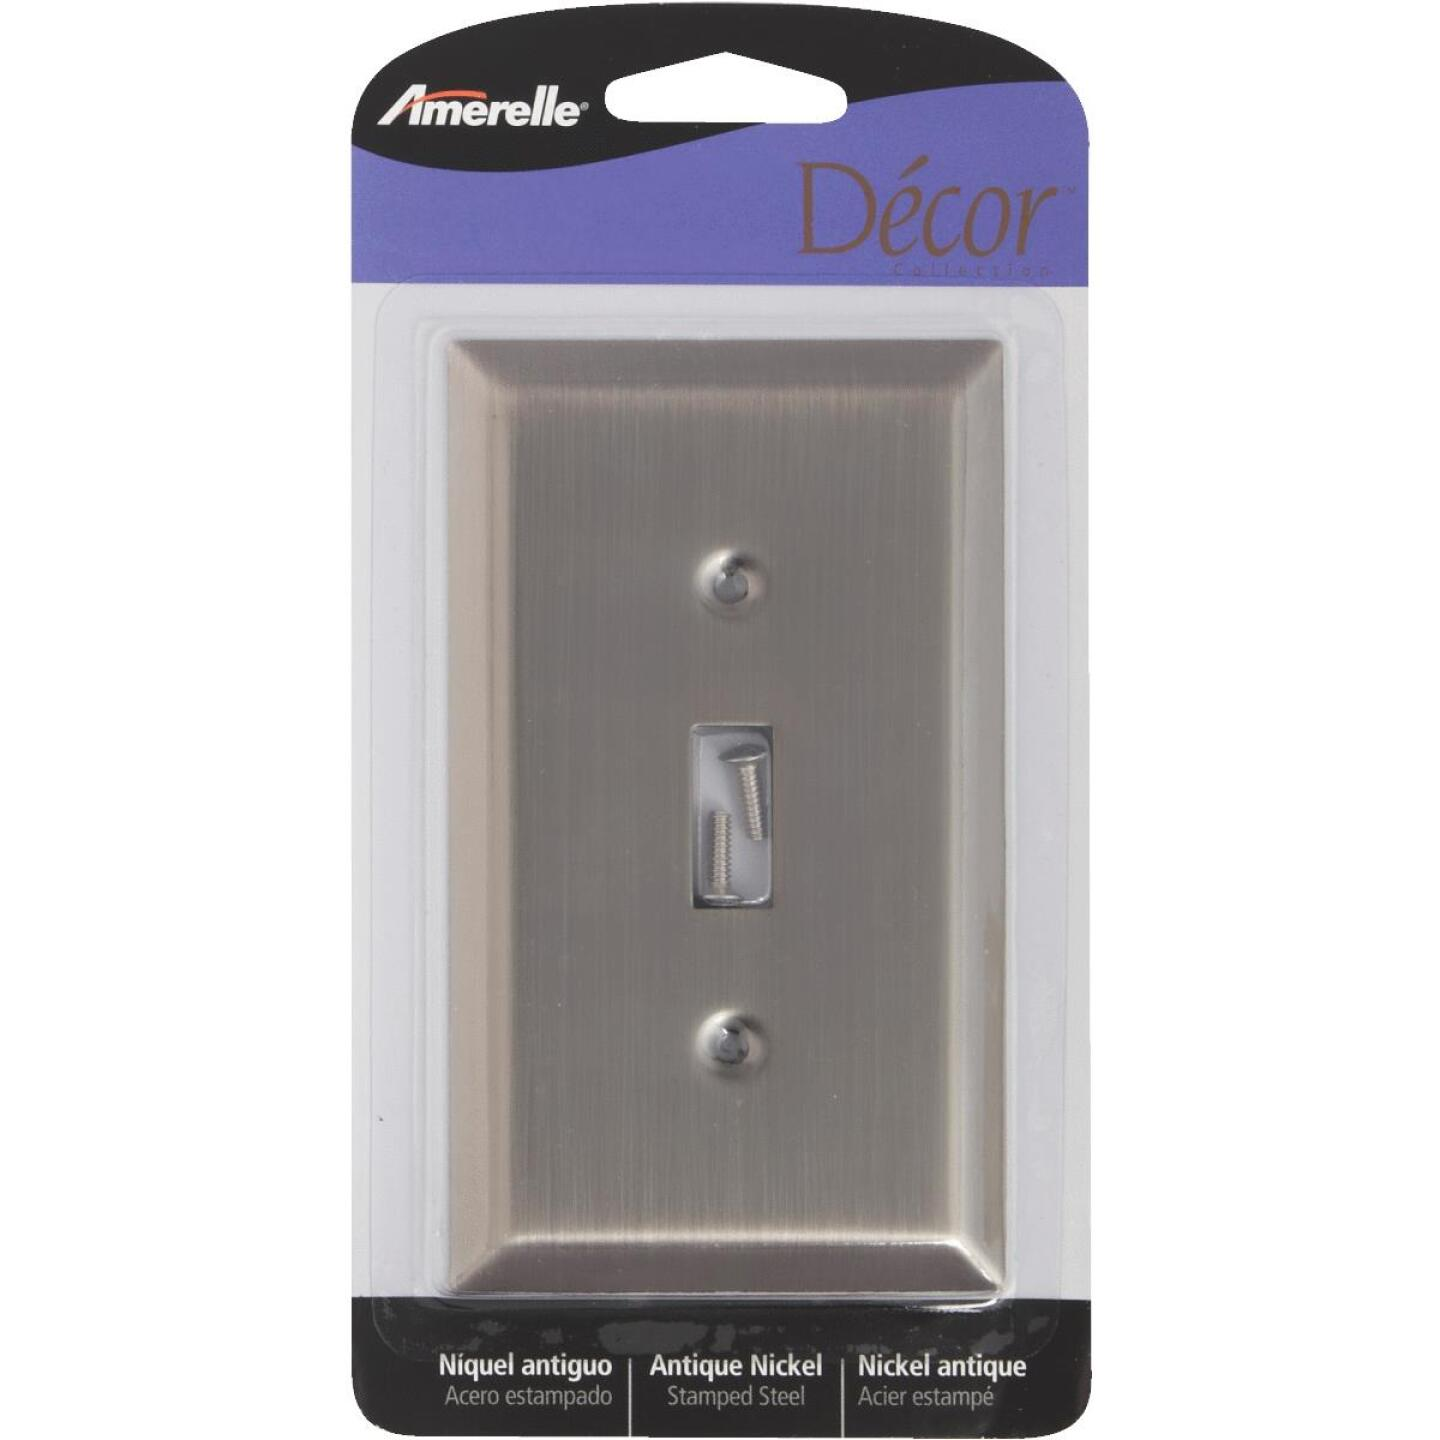 Amerelle 1-Gang Stamped Steel Toggle Switch Wall Plate, Antique Nickel Image 1